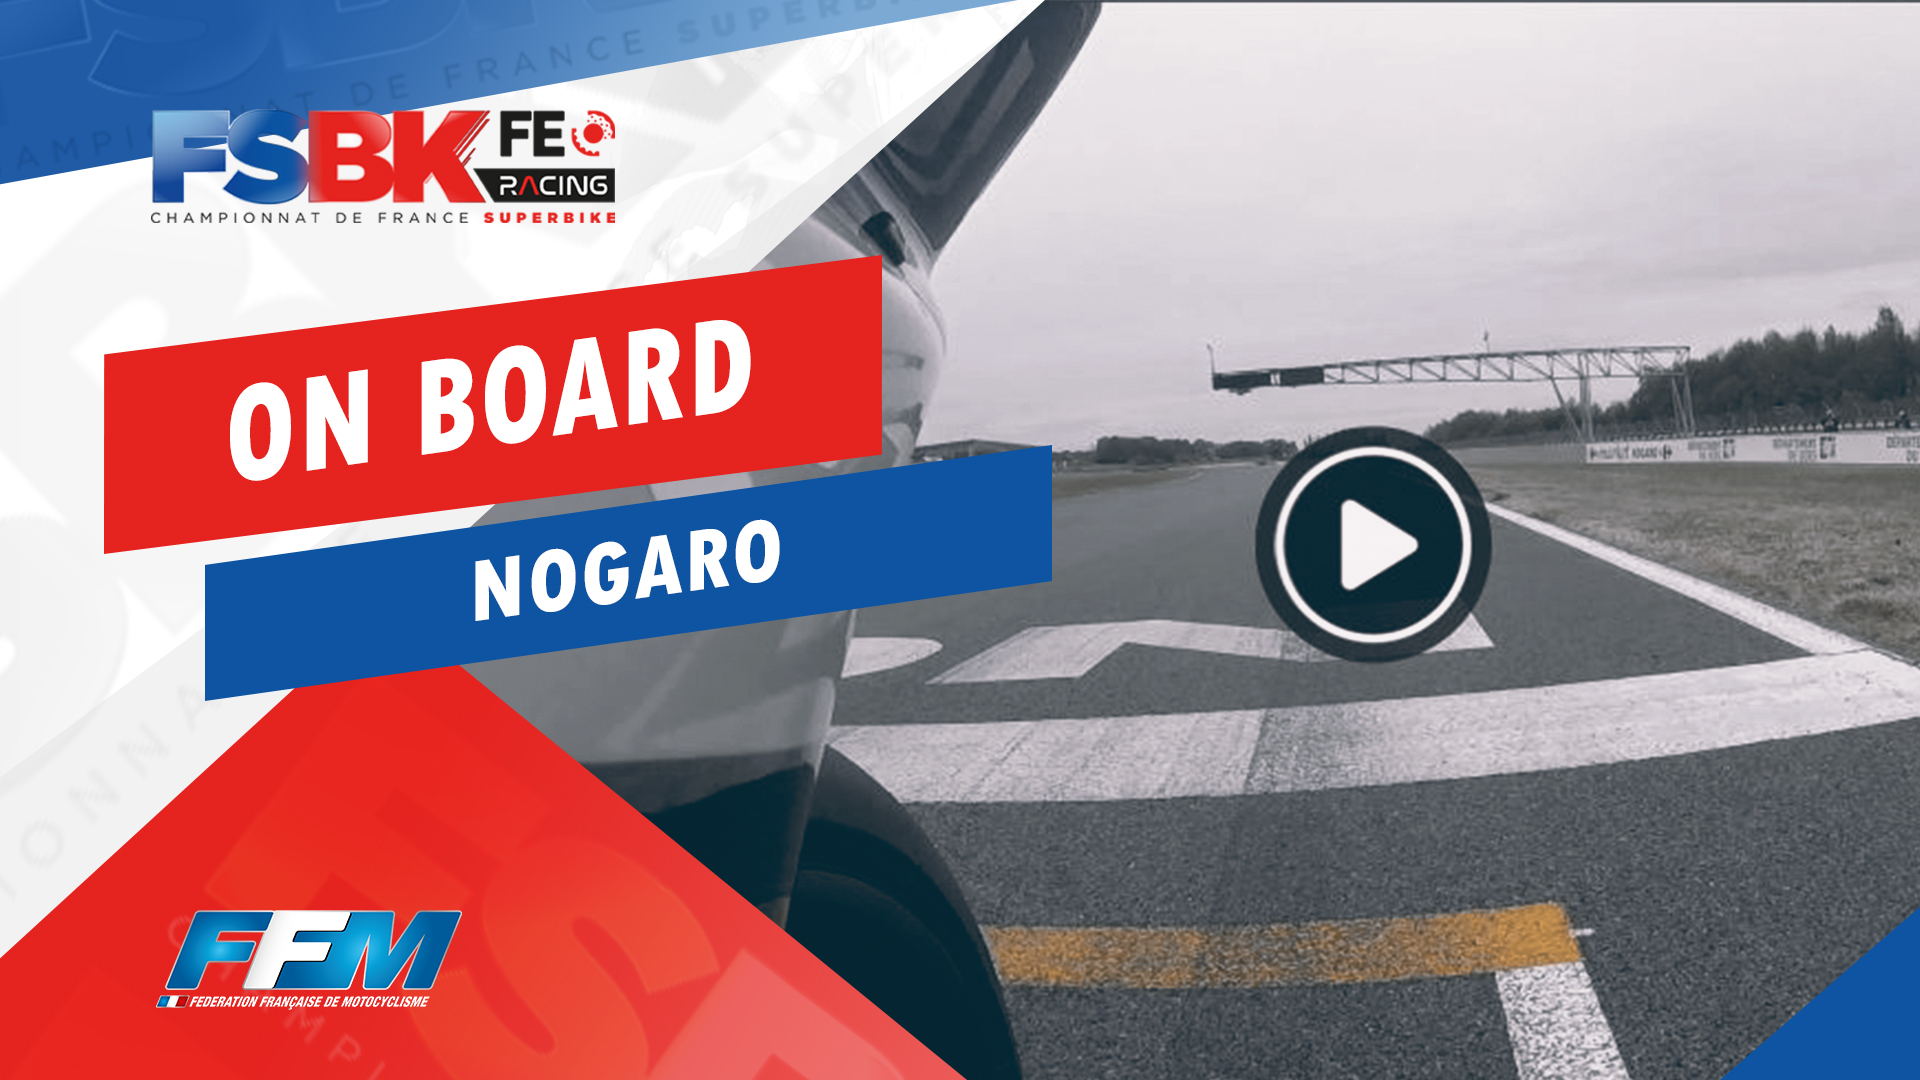 // ON BOARD NOGARO //